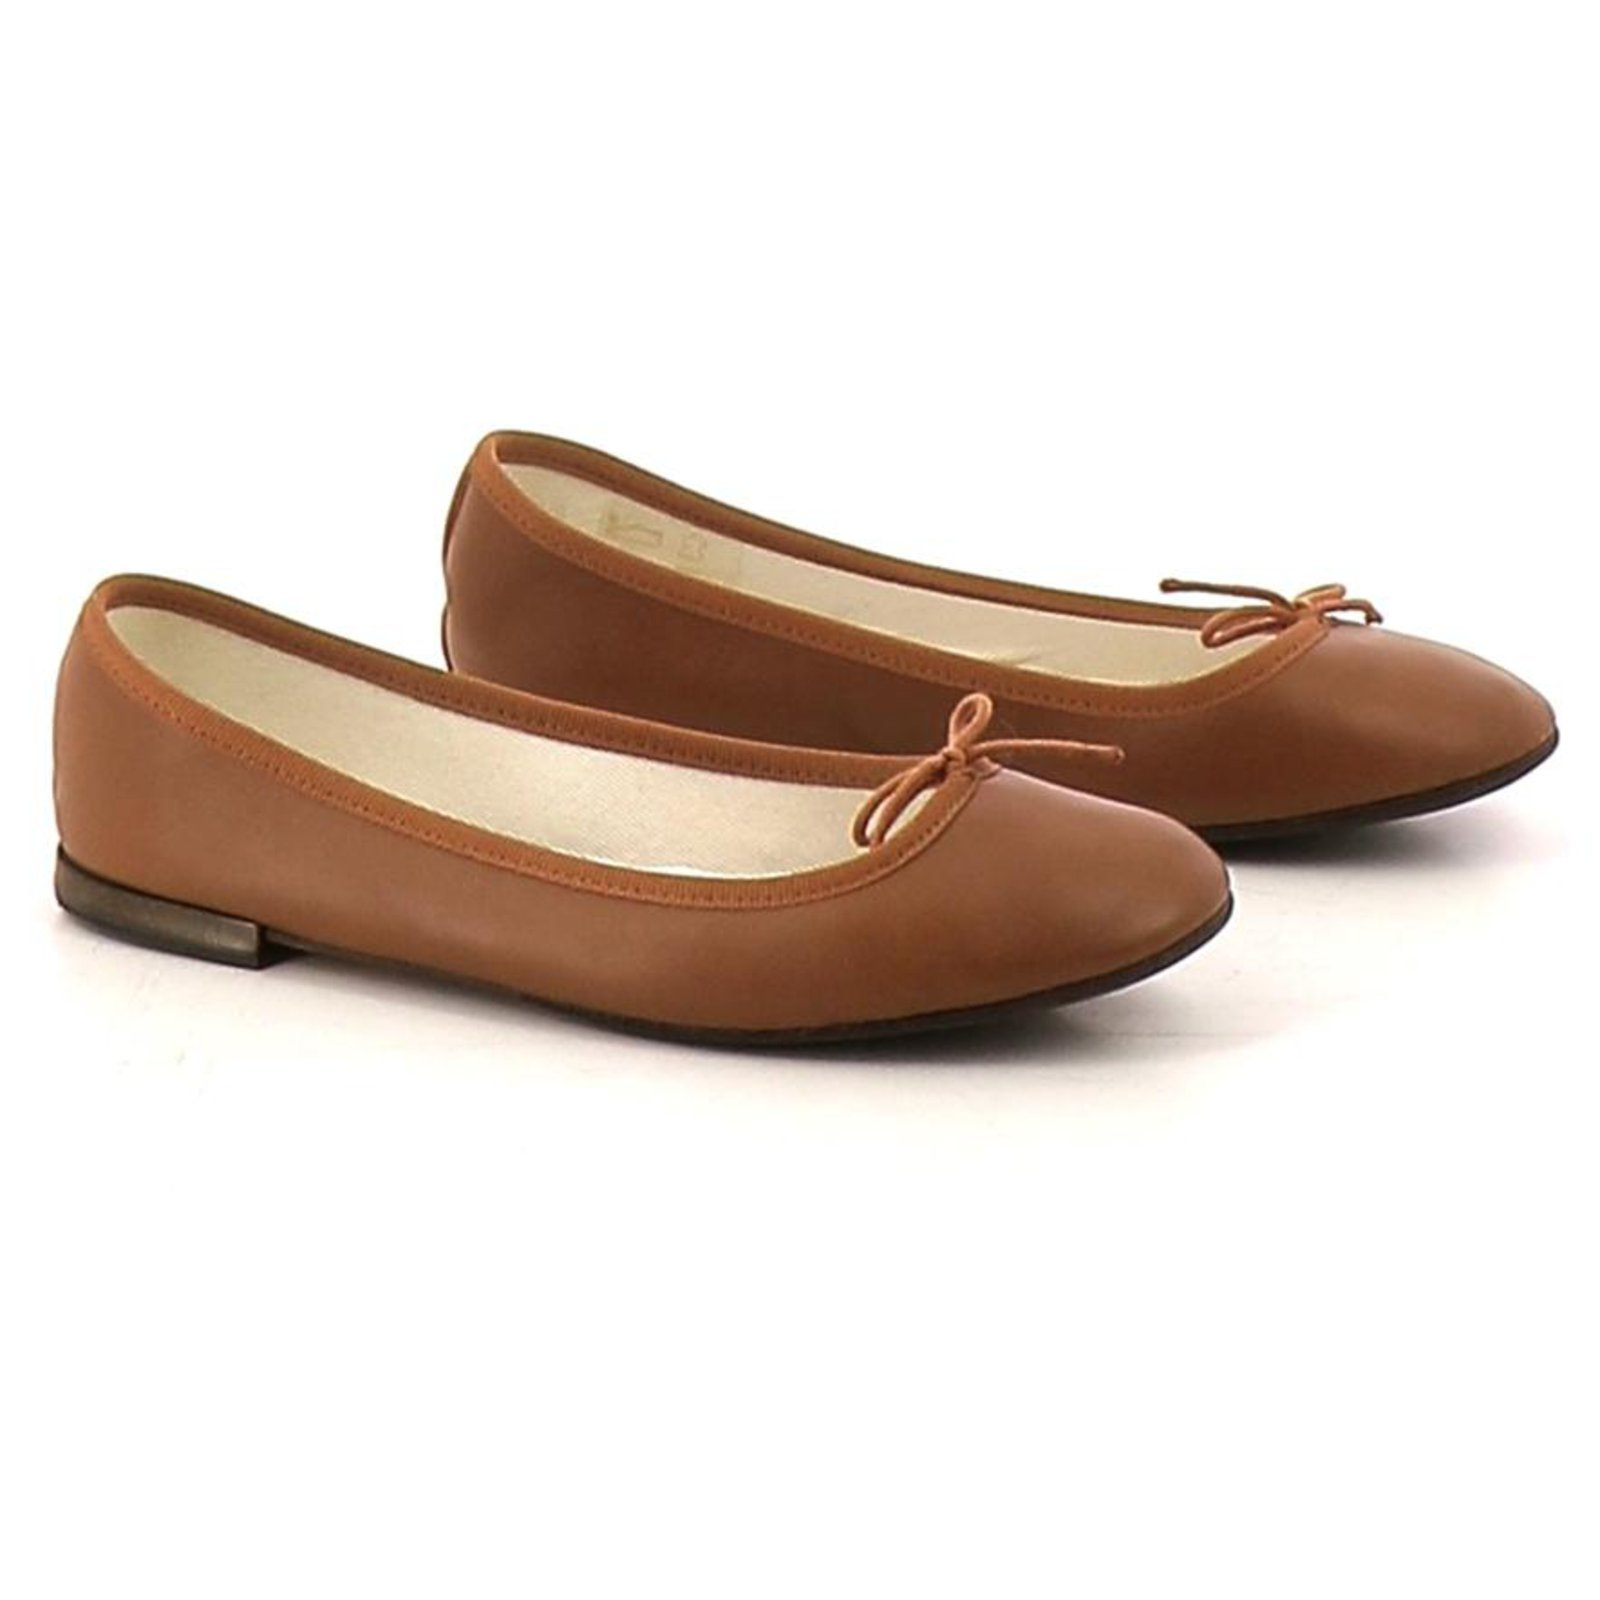 Repetto Dancers Ballet Flats Leather Brown Ref 121403 Joli